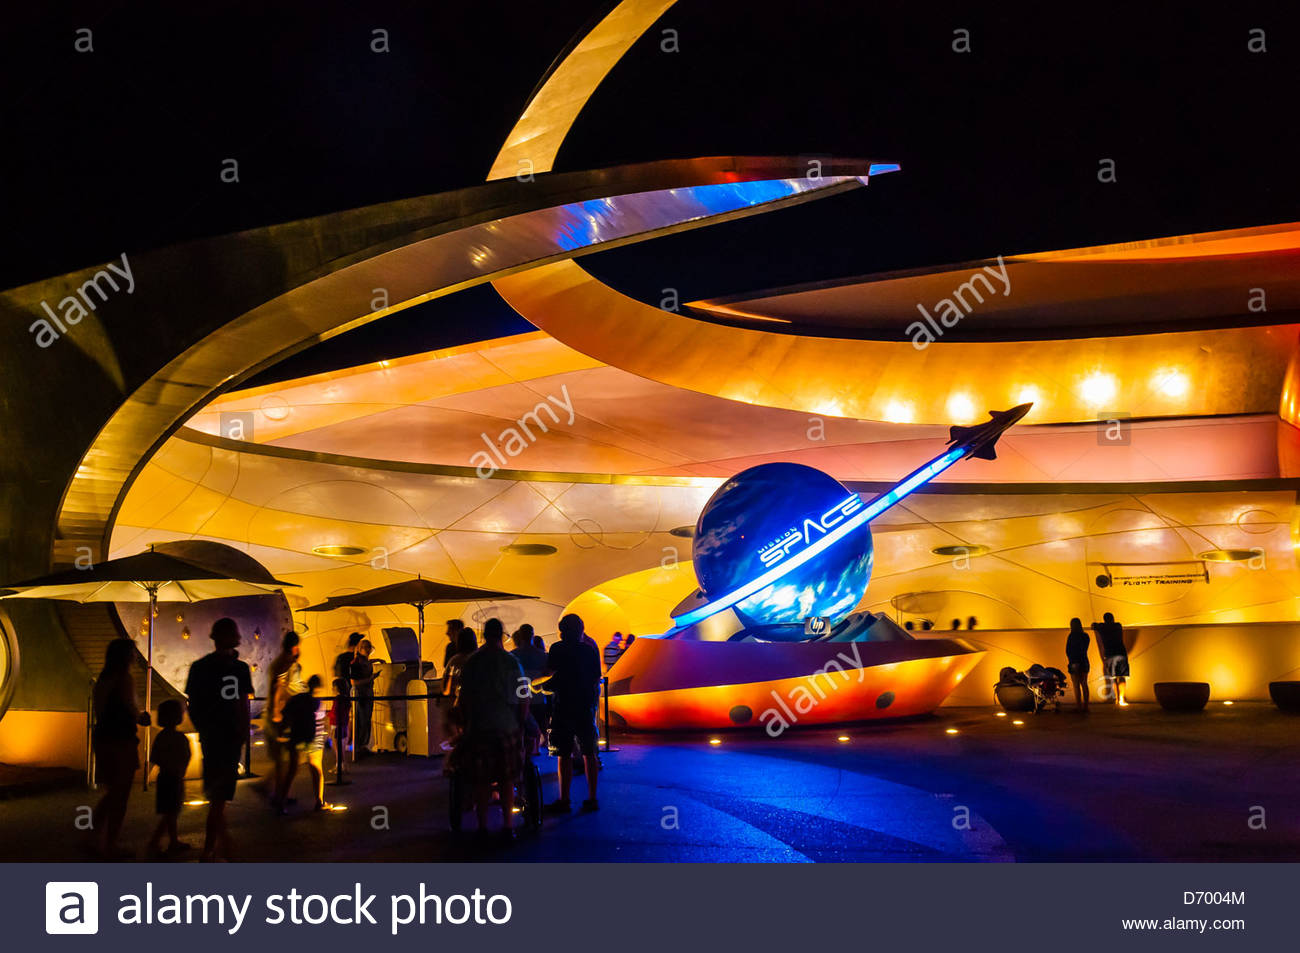 Mission:Space, Epcot, Walt Disney World, Orlando, Florida USA - Stock Image